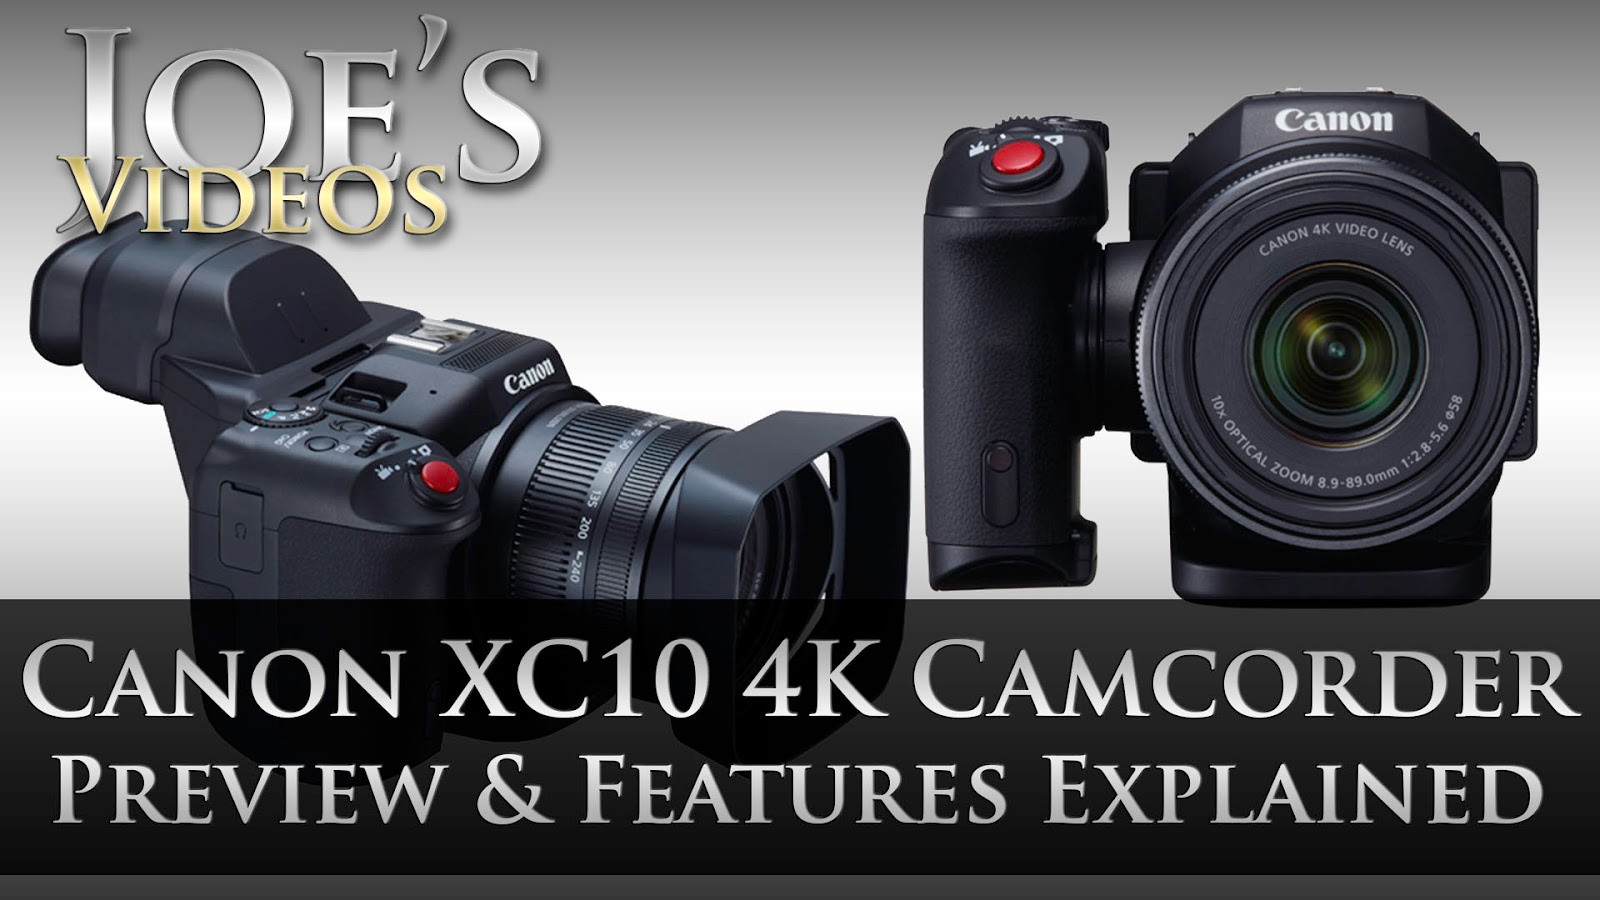 Canon XC10 Ultra HD 4K Camcorder Preview, Features Explained & My Opinions | Joe's Videos